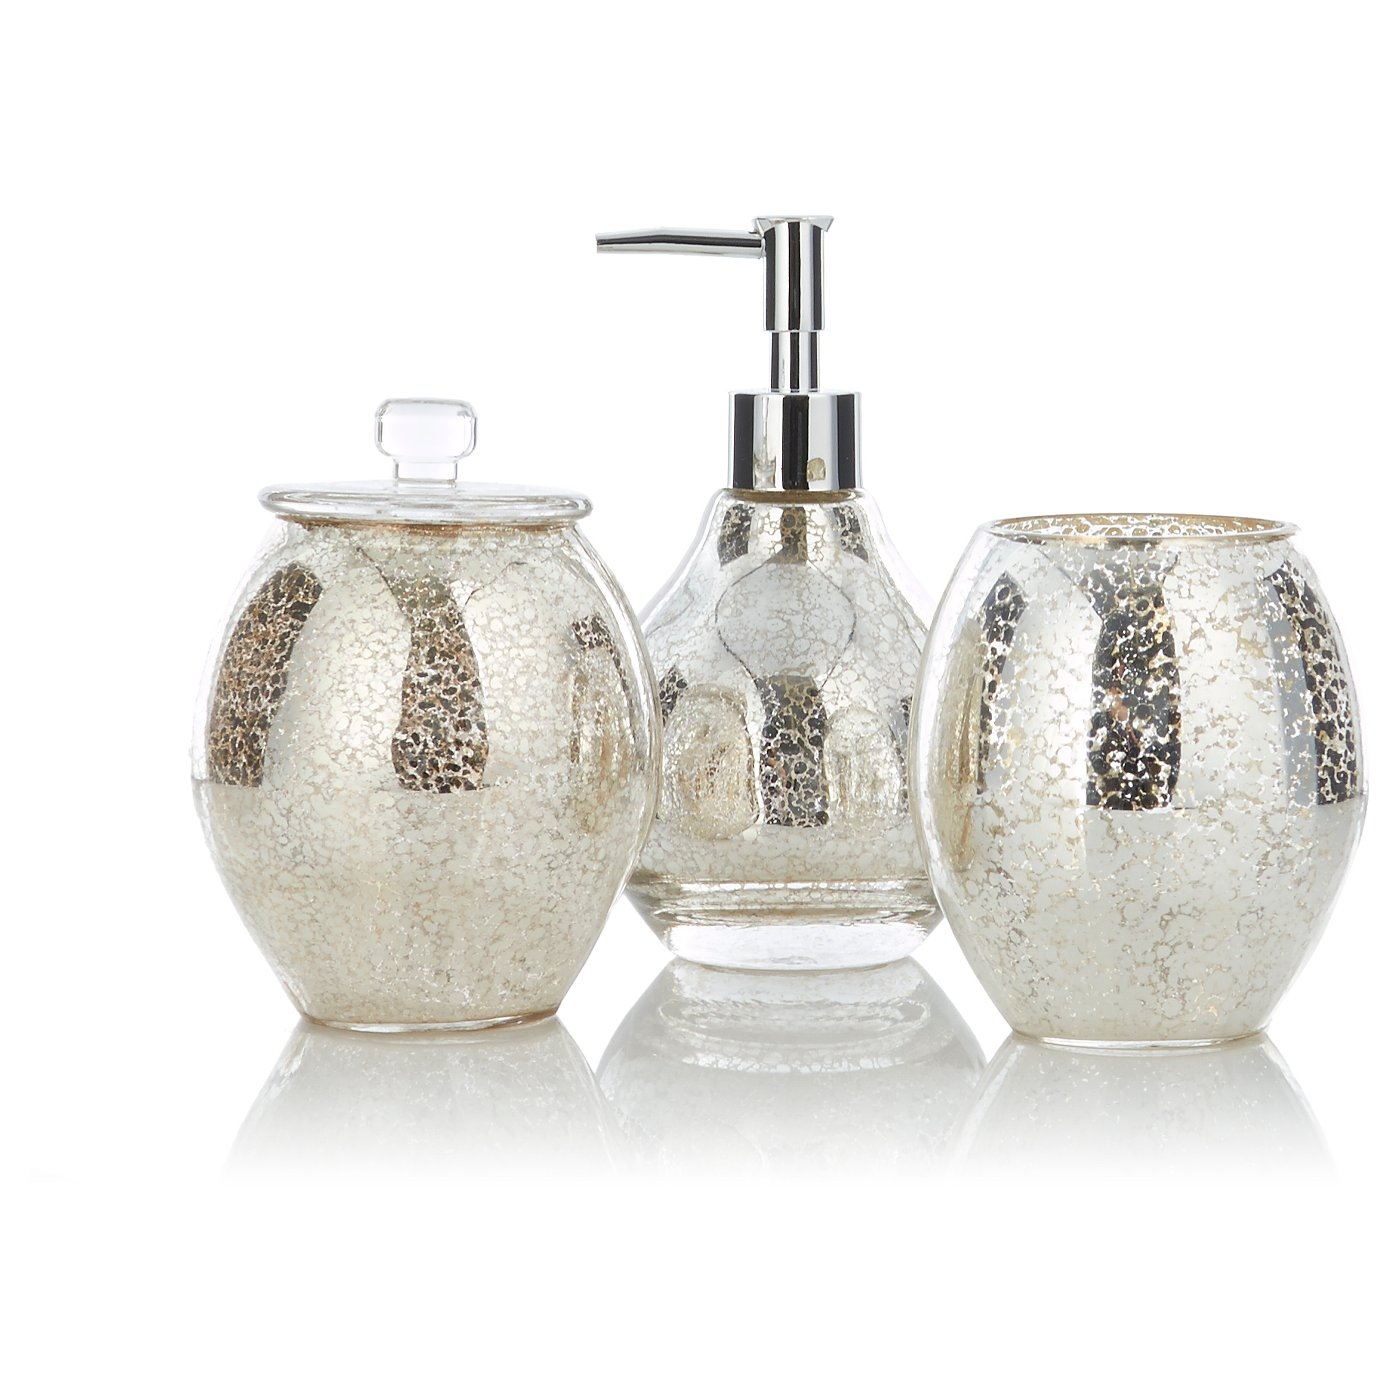 George Home Accessories - Mercury Glass | Bathroom Accessories ...